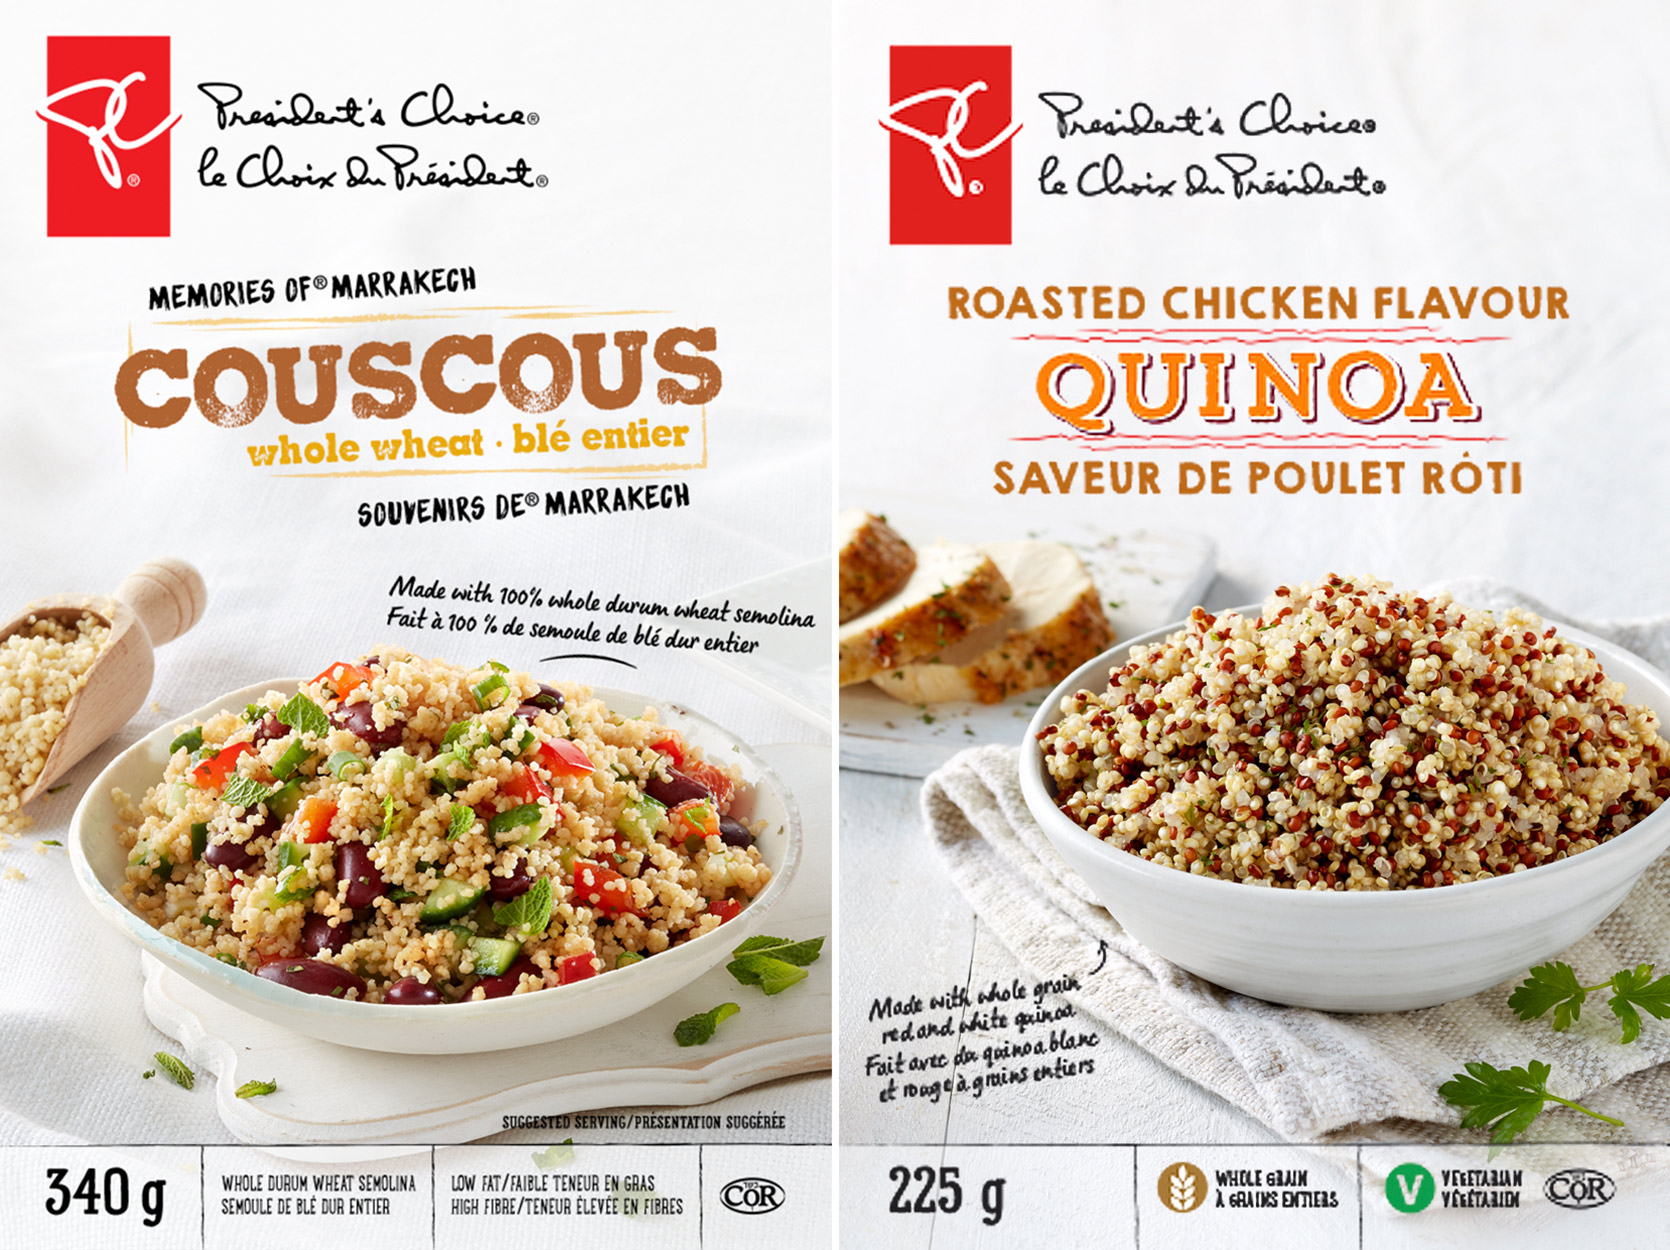 632890_PC_Quinoa_ChickenHerb-FINAL_628876_PC_Couscous_WholeWheat-FINAL_DUO_WEB